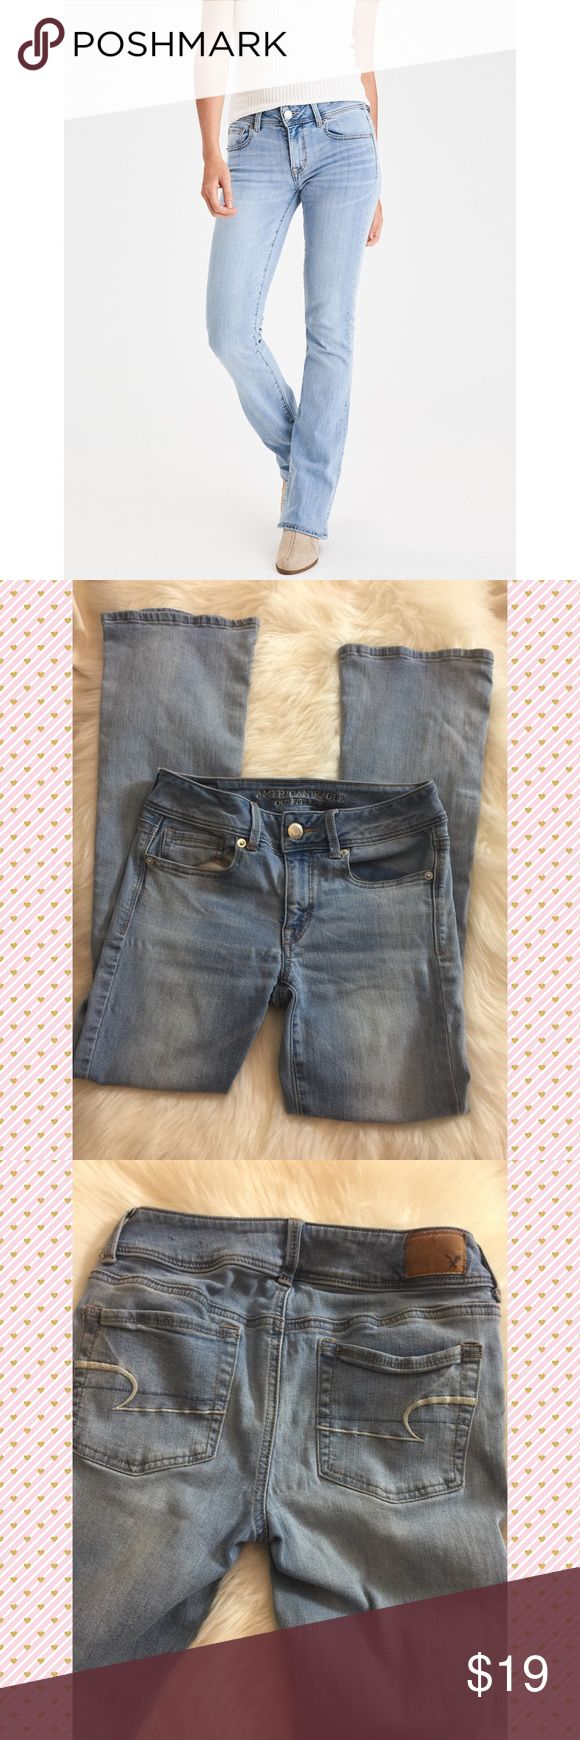 American Eagle Size 4 Short Kick boot Jeans American Eagle Kick Boot Faded Indigo Super Stretch Jeans   Size: 4 Short   In excellent condition ! American Eagle Outfitters Jeans Boot Cut